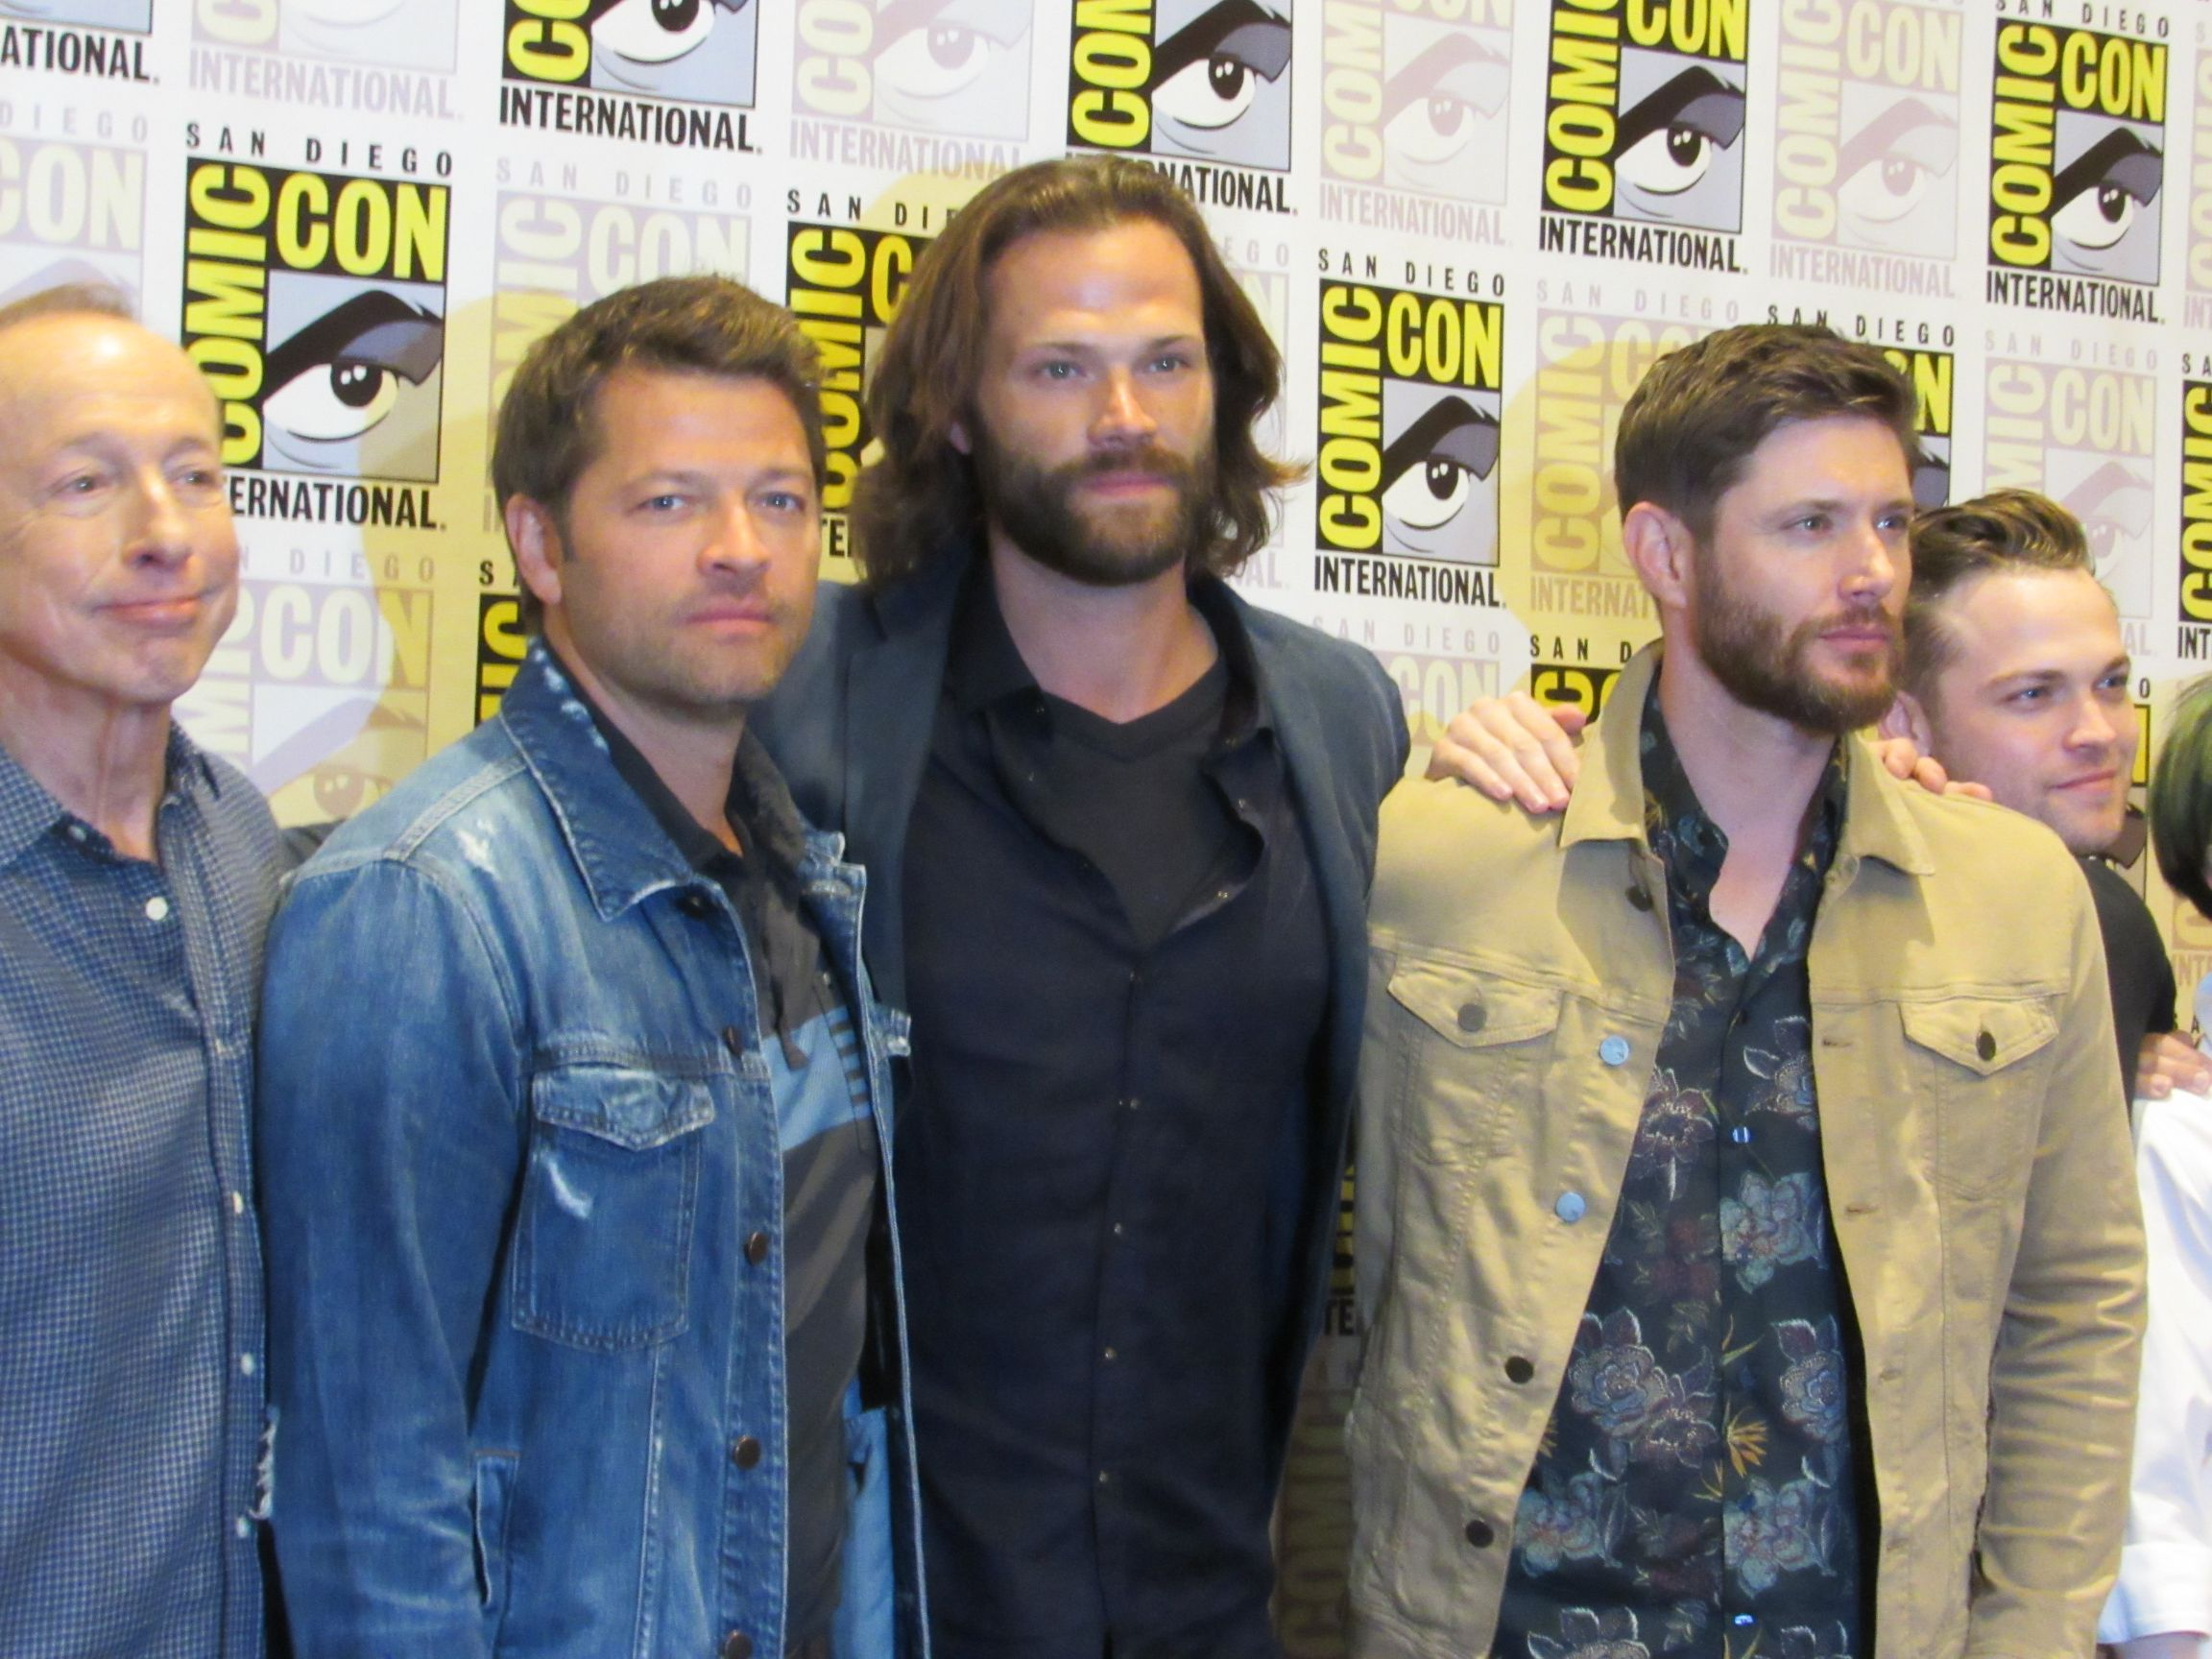 Supernatural comic con press jensen ackles jared padalecki